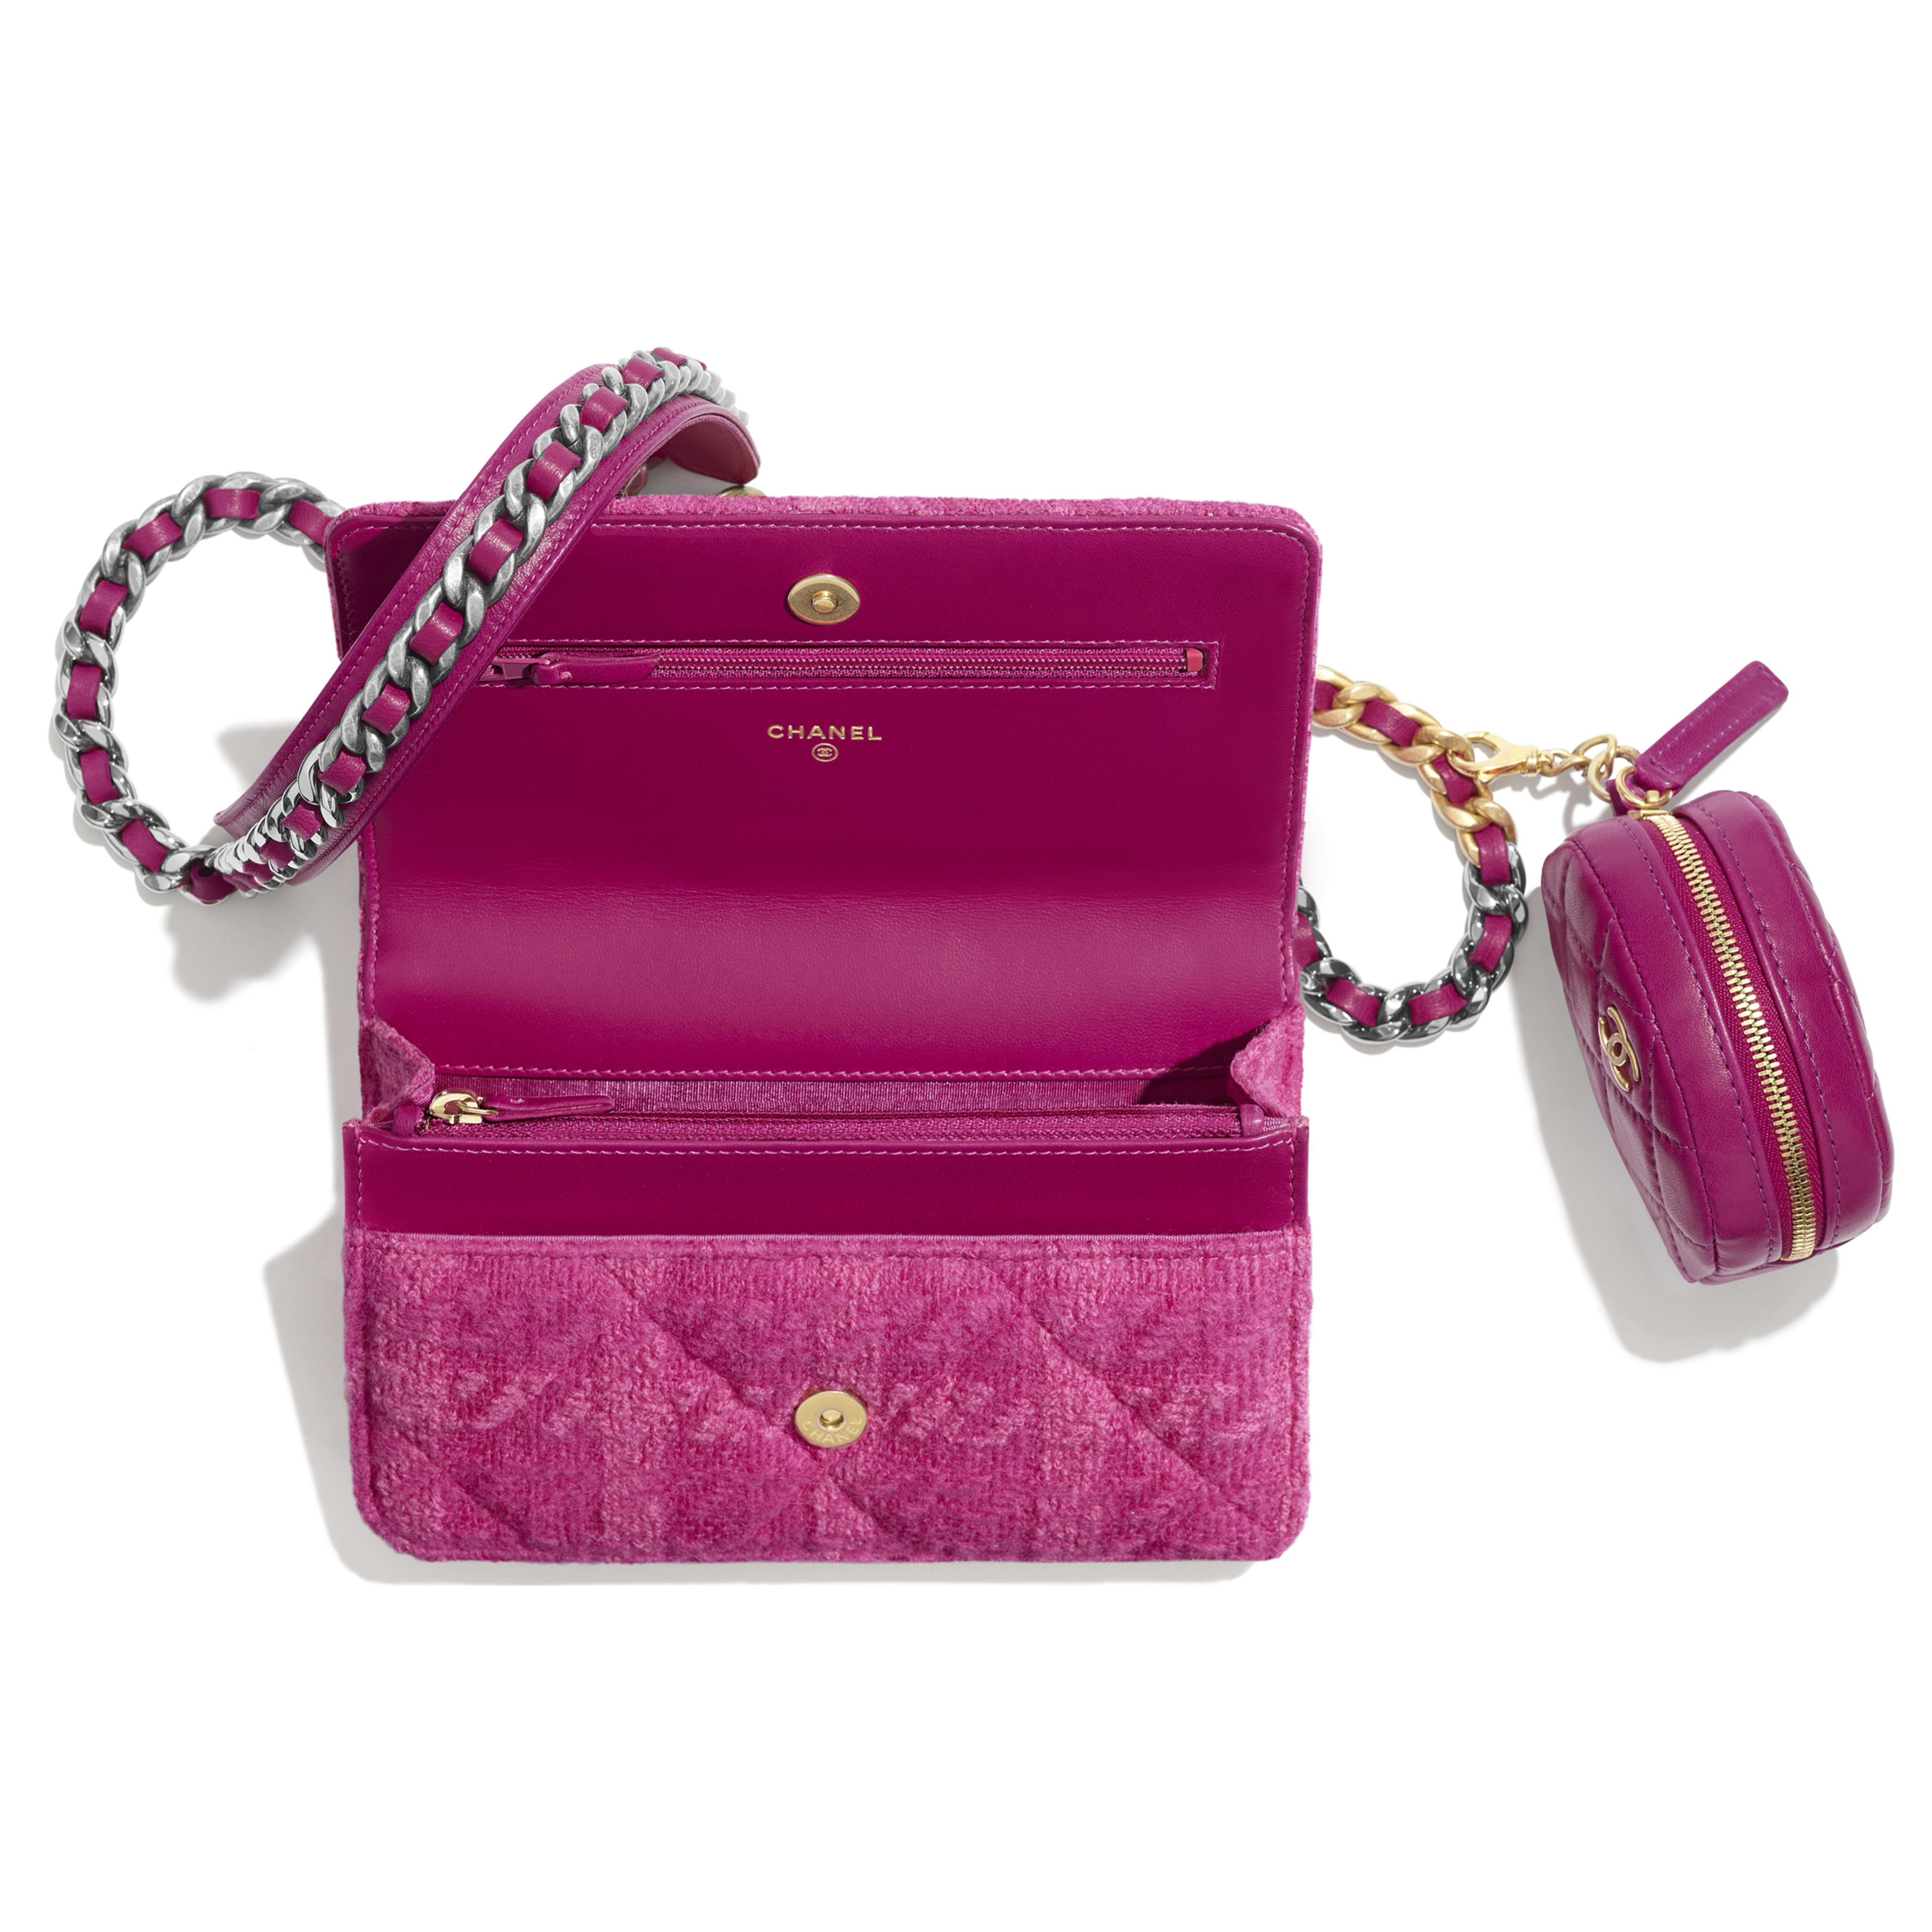 CHANEL 19 Wallet on Chain & Coin Purse - Fuchsia - Wool Tweed, Lambskin, Gold-Tone, Silver-Tone & Ruthenium-Finish Metal - Other view - see full sized version